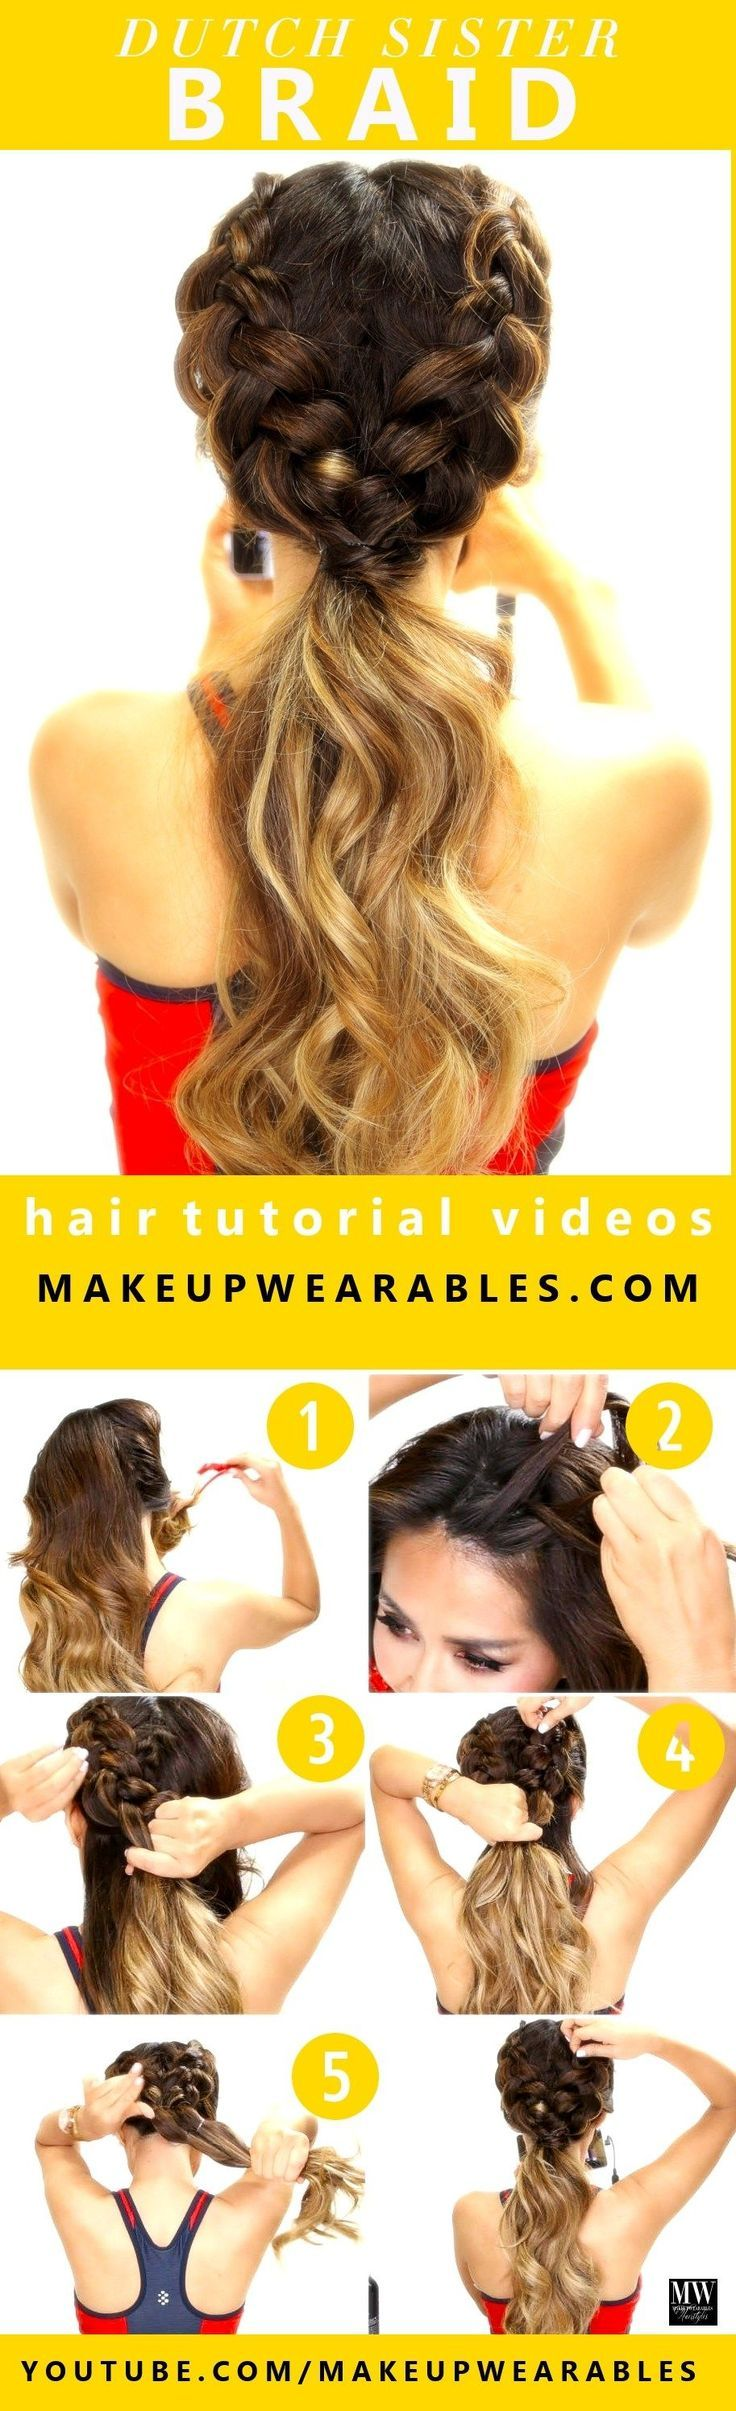 3 cutest hairstyles for the gym or everyday! quick and easy go to's. #QuickEverydayHairstyles